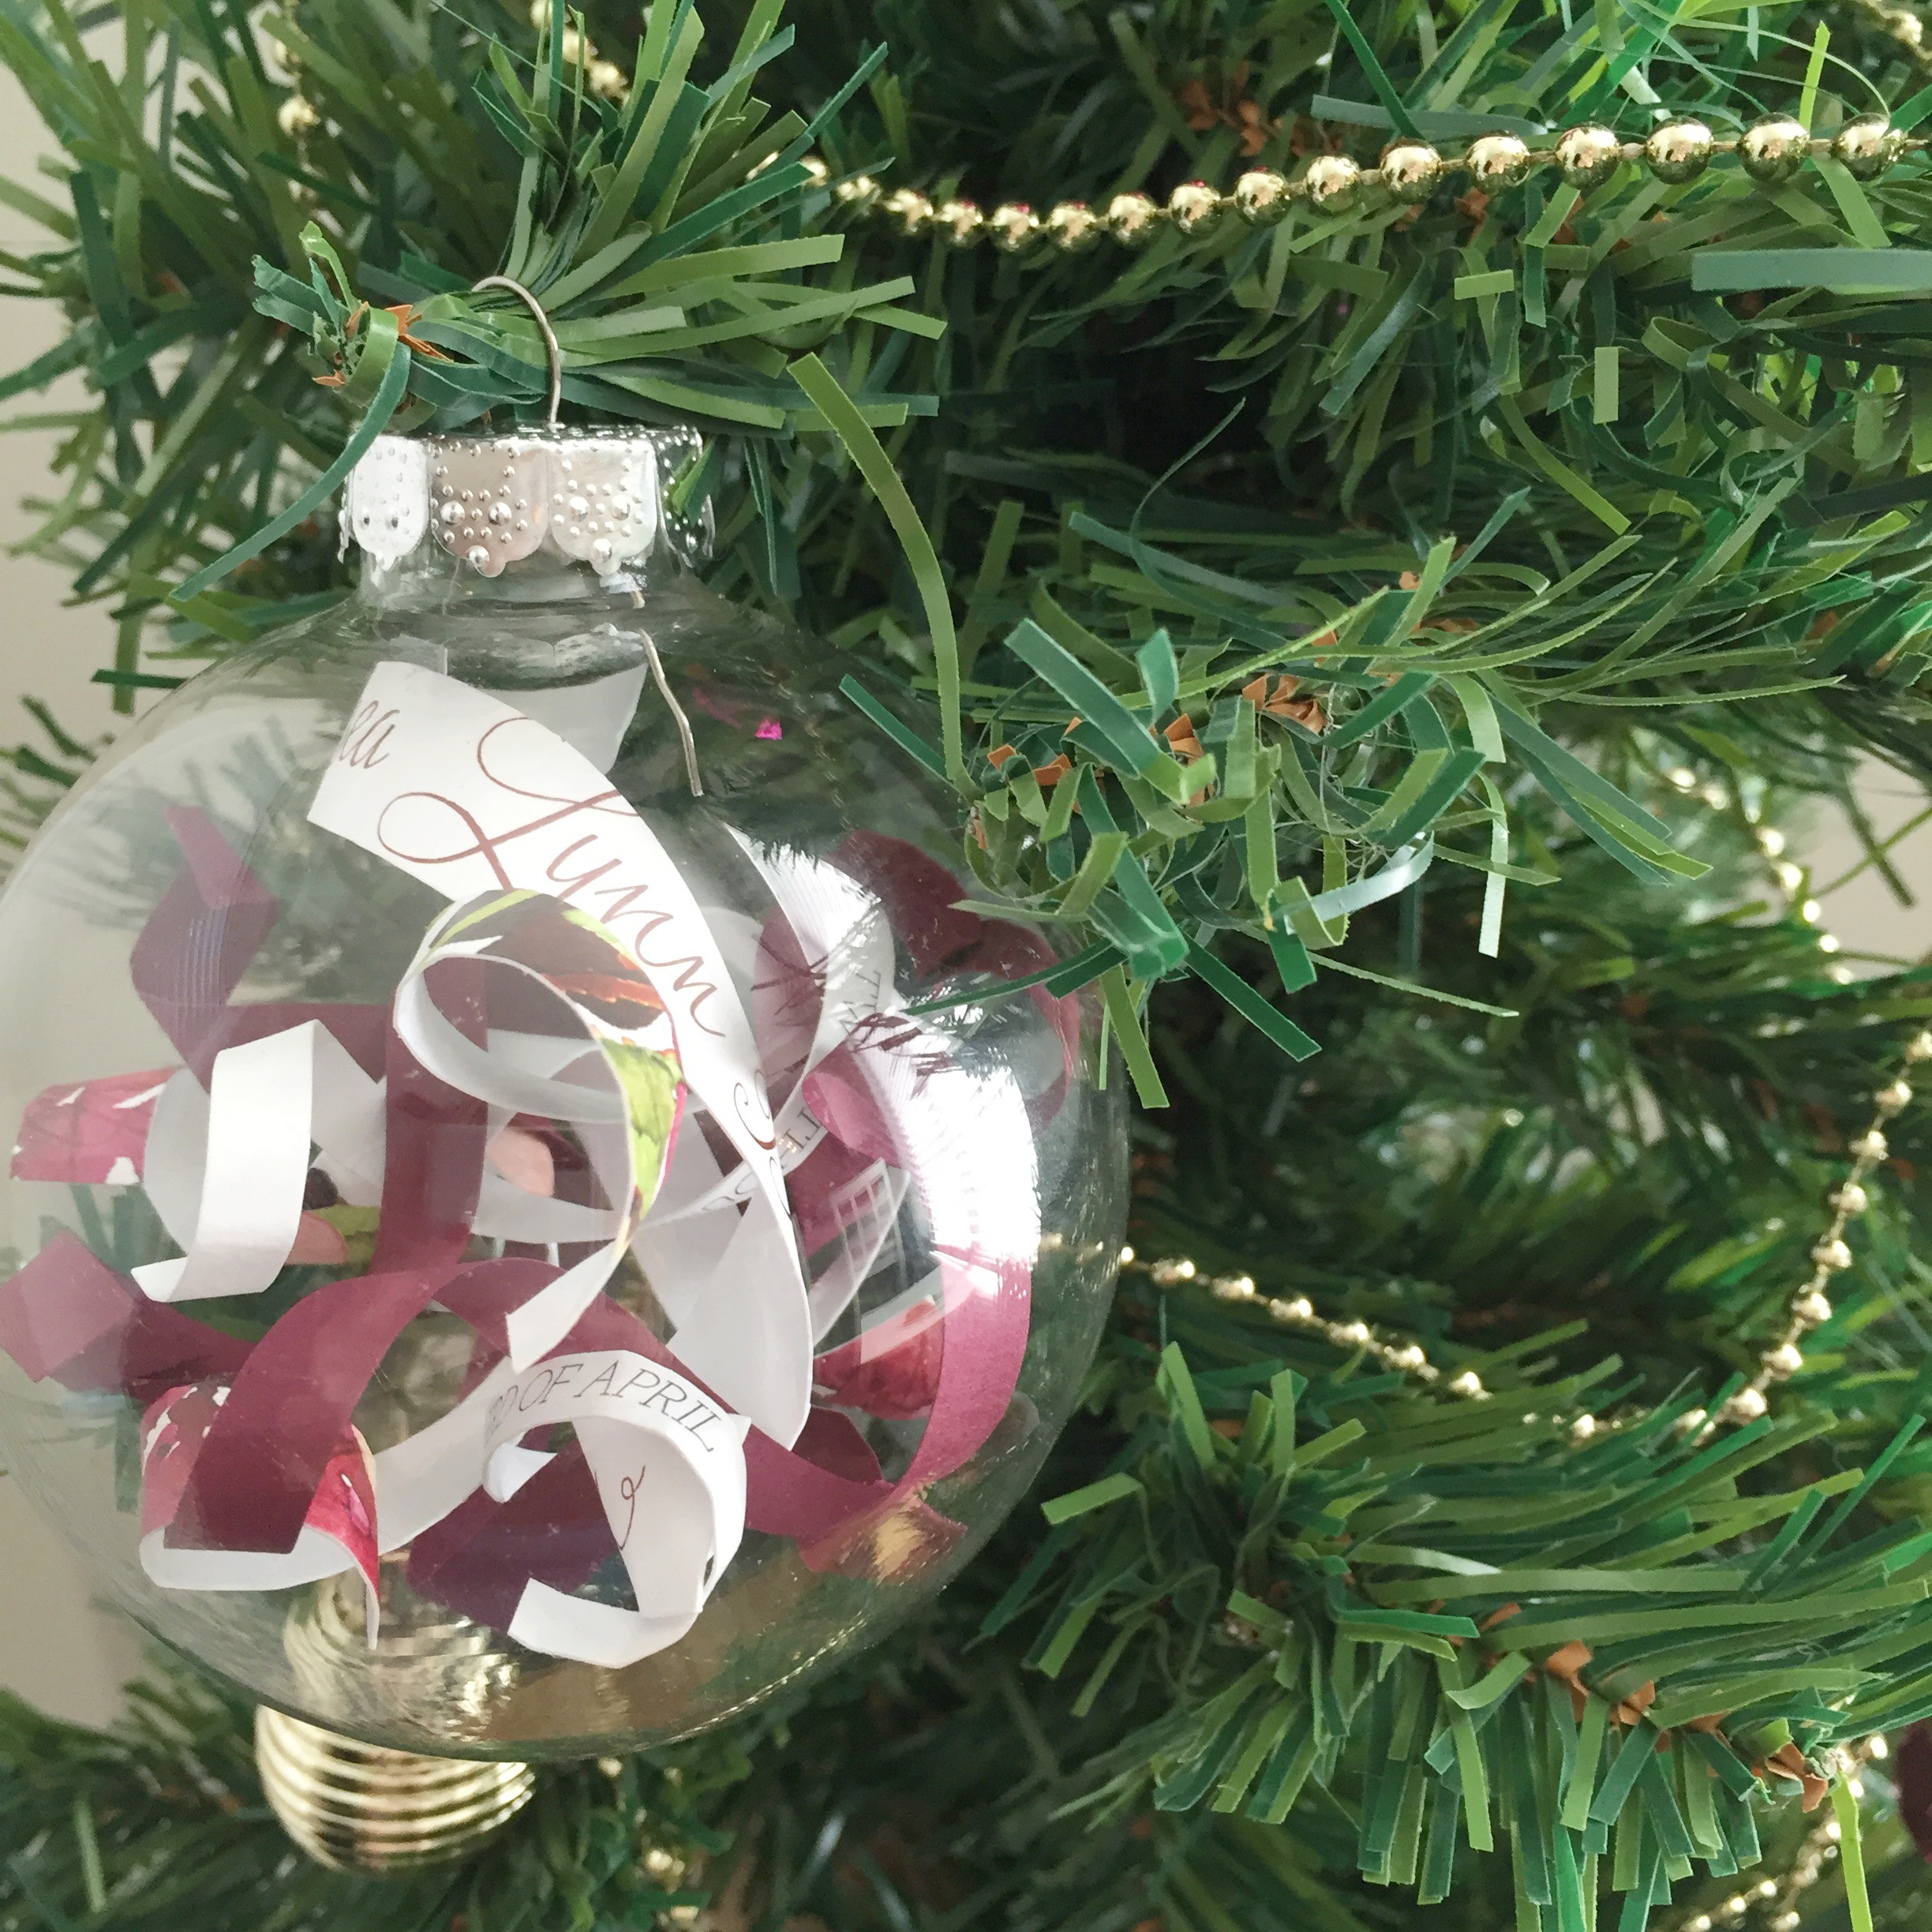 First married christmas ornament - Married Christmas